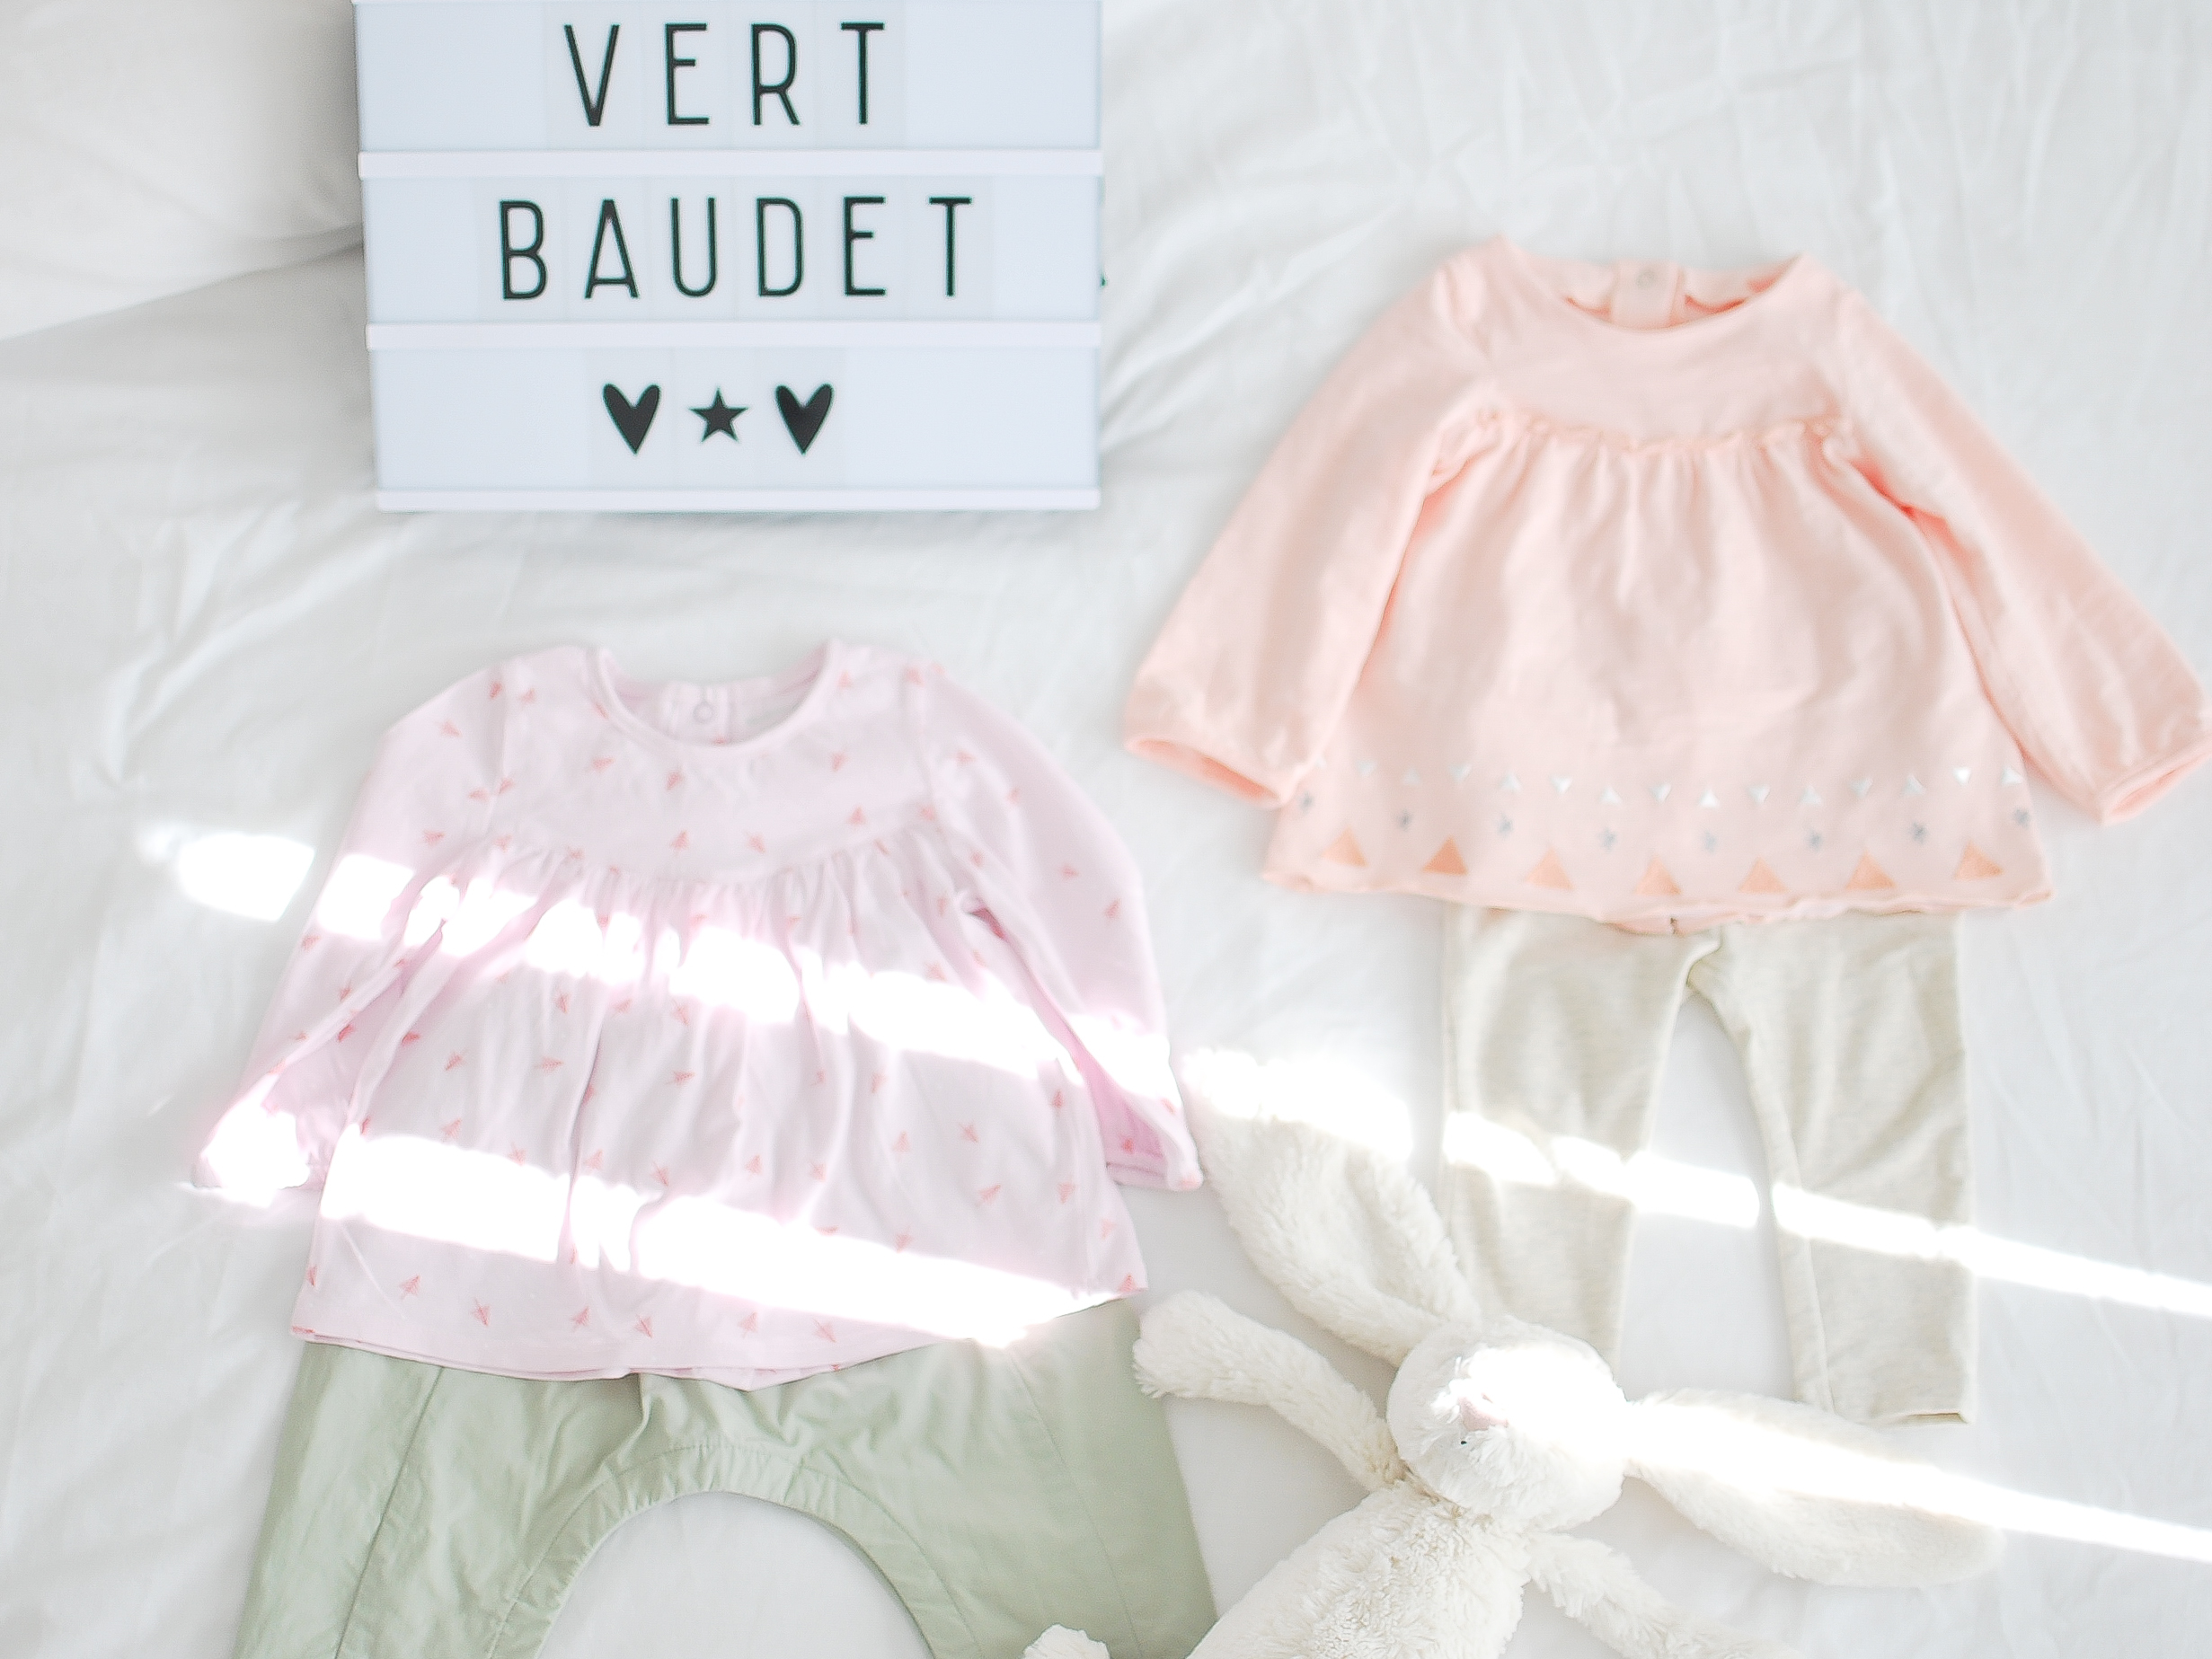 outfitvertbaudet